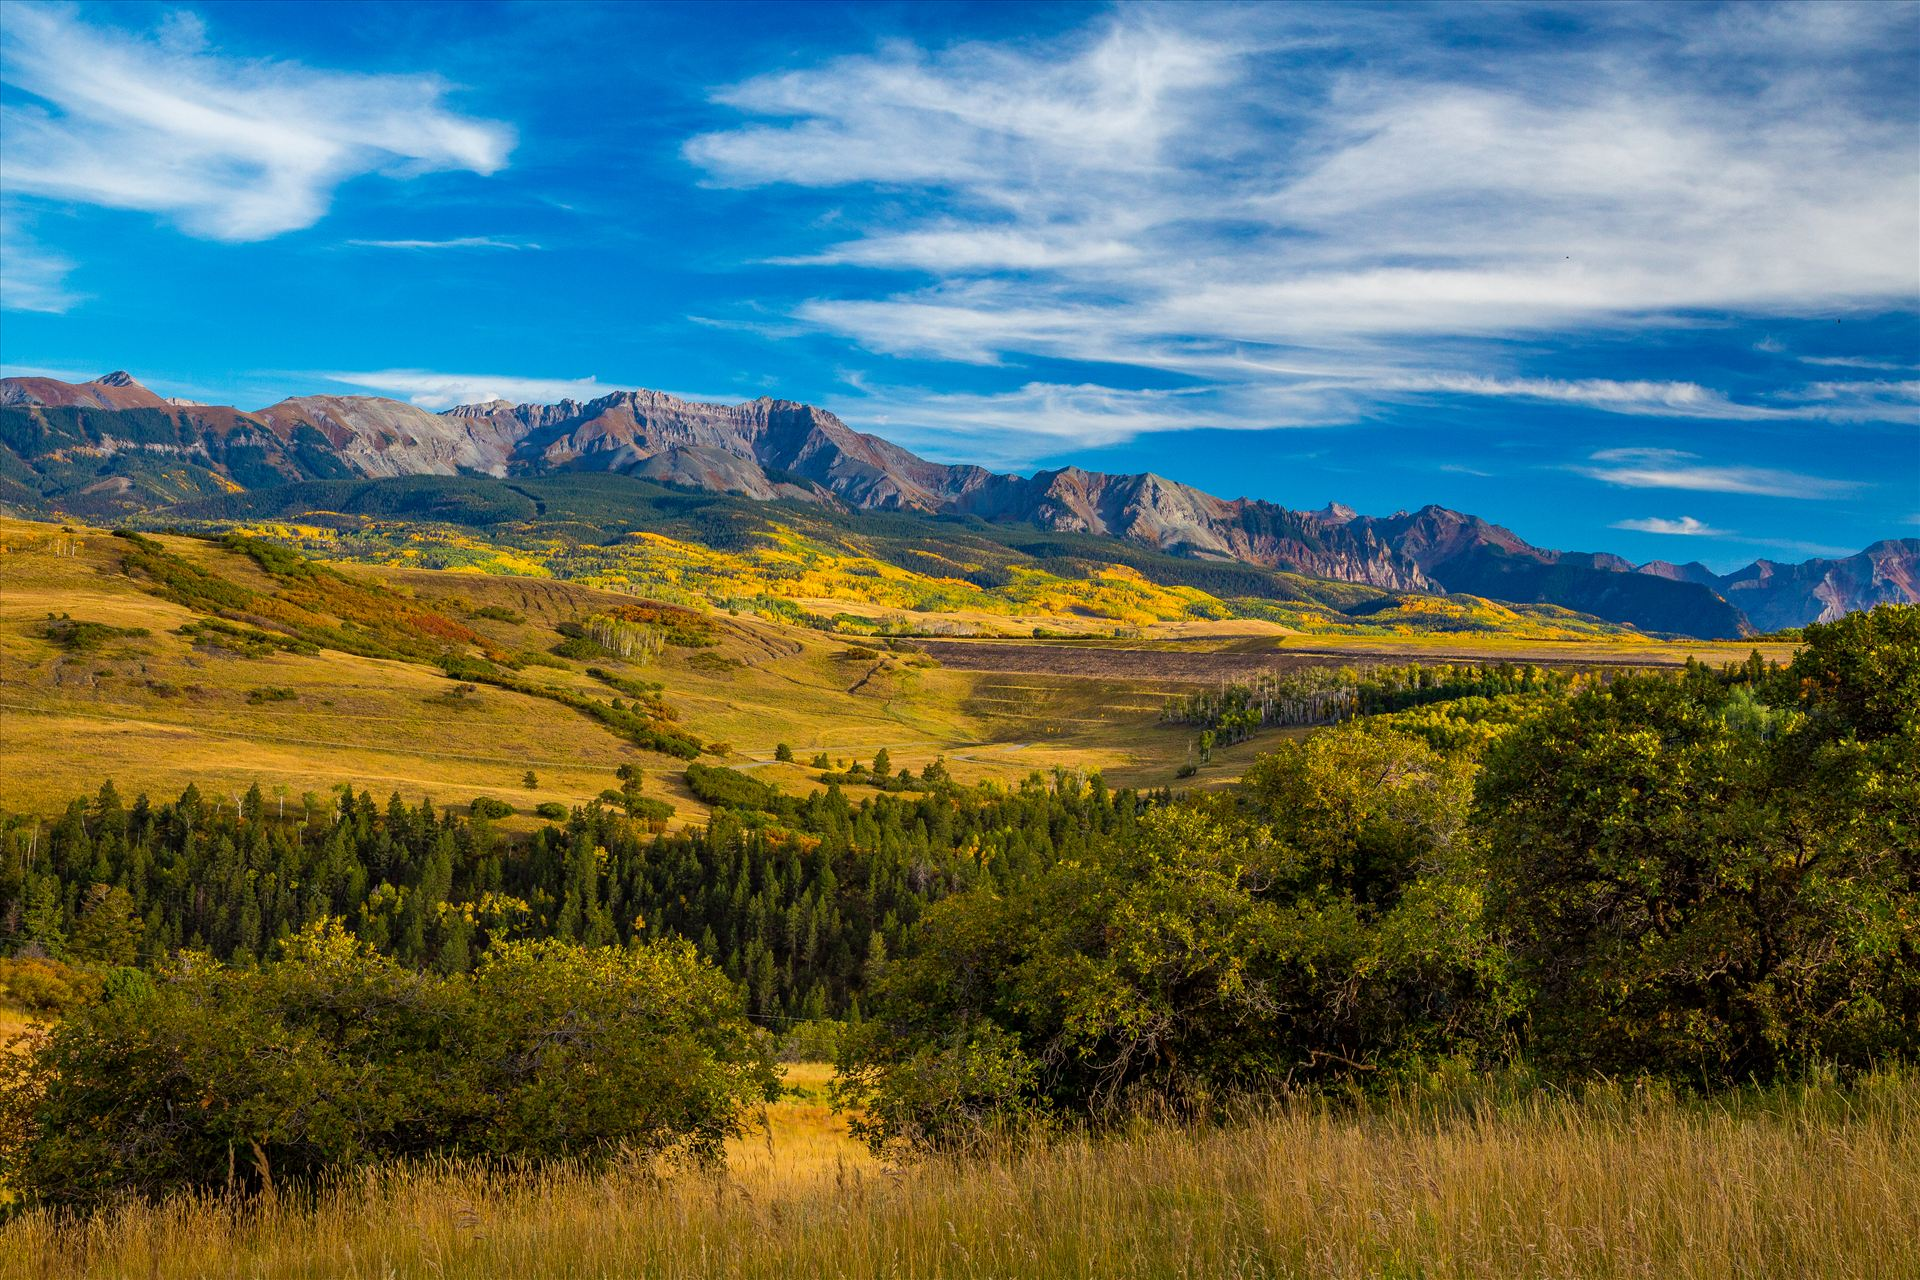 Last Dollar Road 2 - From Last Dollar Road looking towards the San Joquin Range, the area around Telluride explodes with fall colors. by D Scott Smith